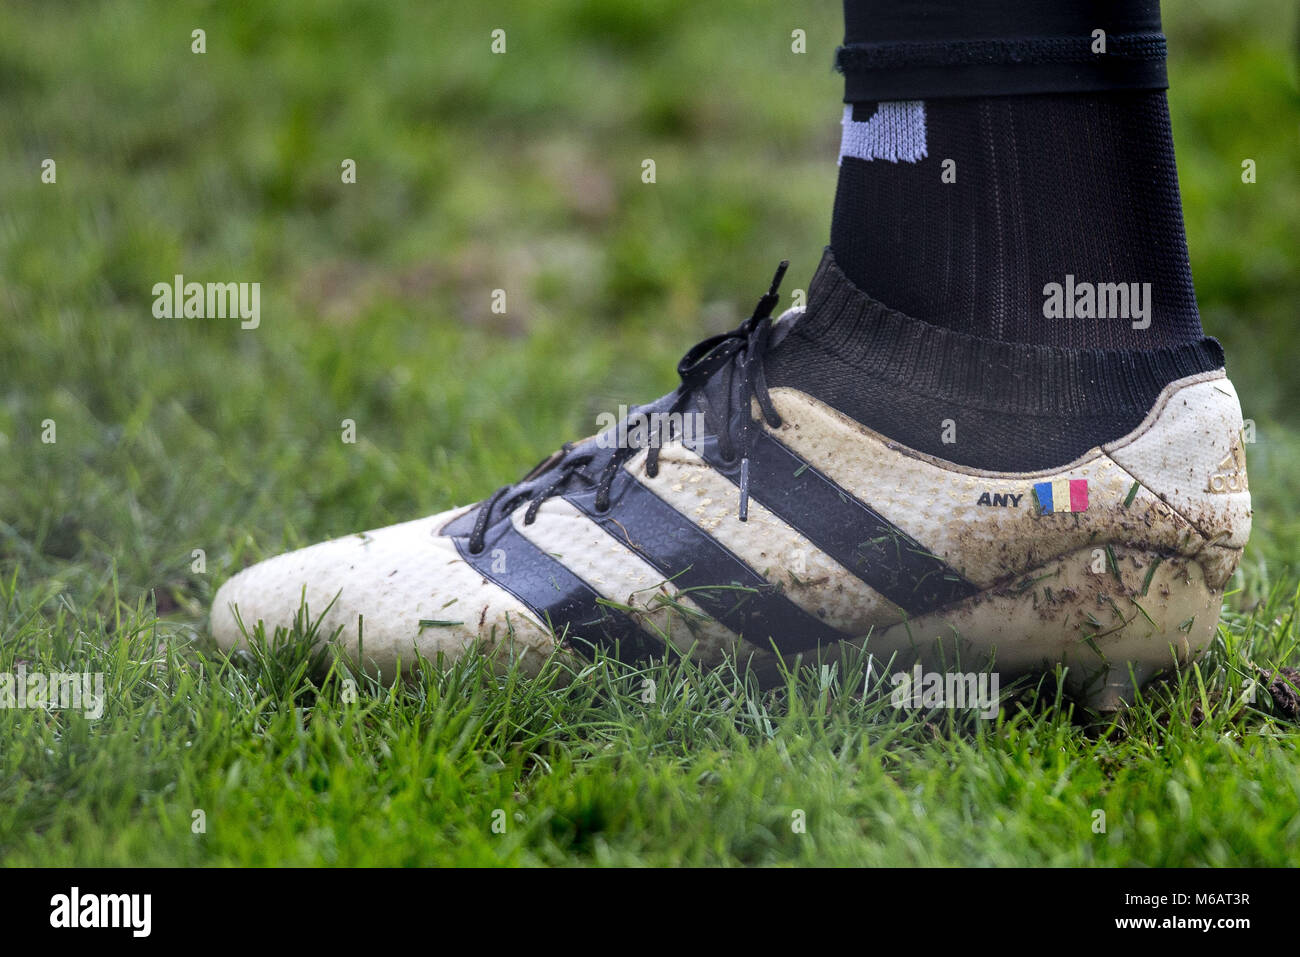 81fb3d94df45 Watford Goalkeeper Costel Pantilimon personalised adidas football boot  displaying ANY   the Romanian flag during the FA Cup fourth round match  between